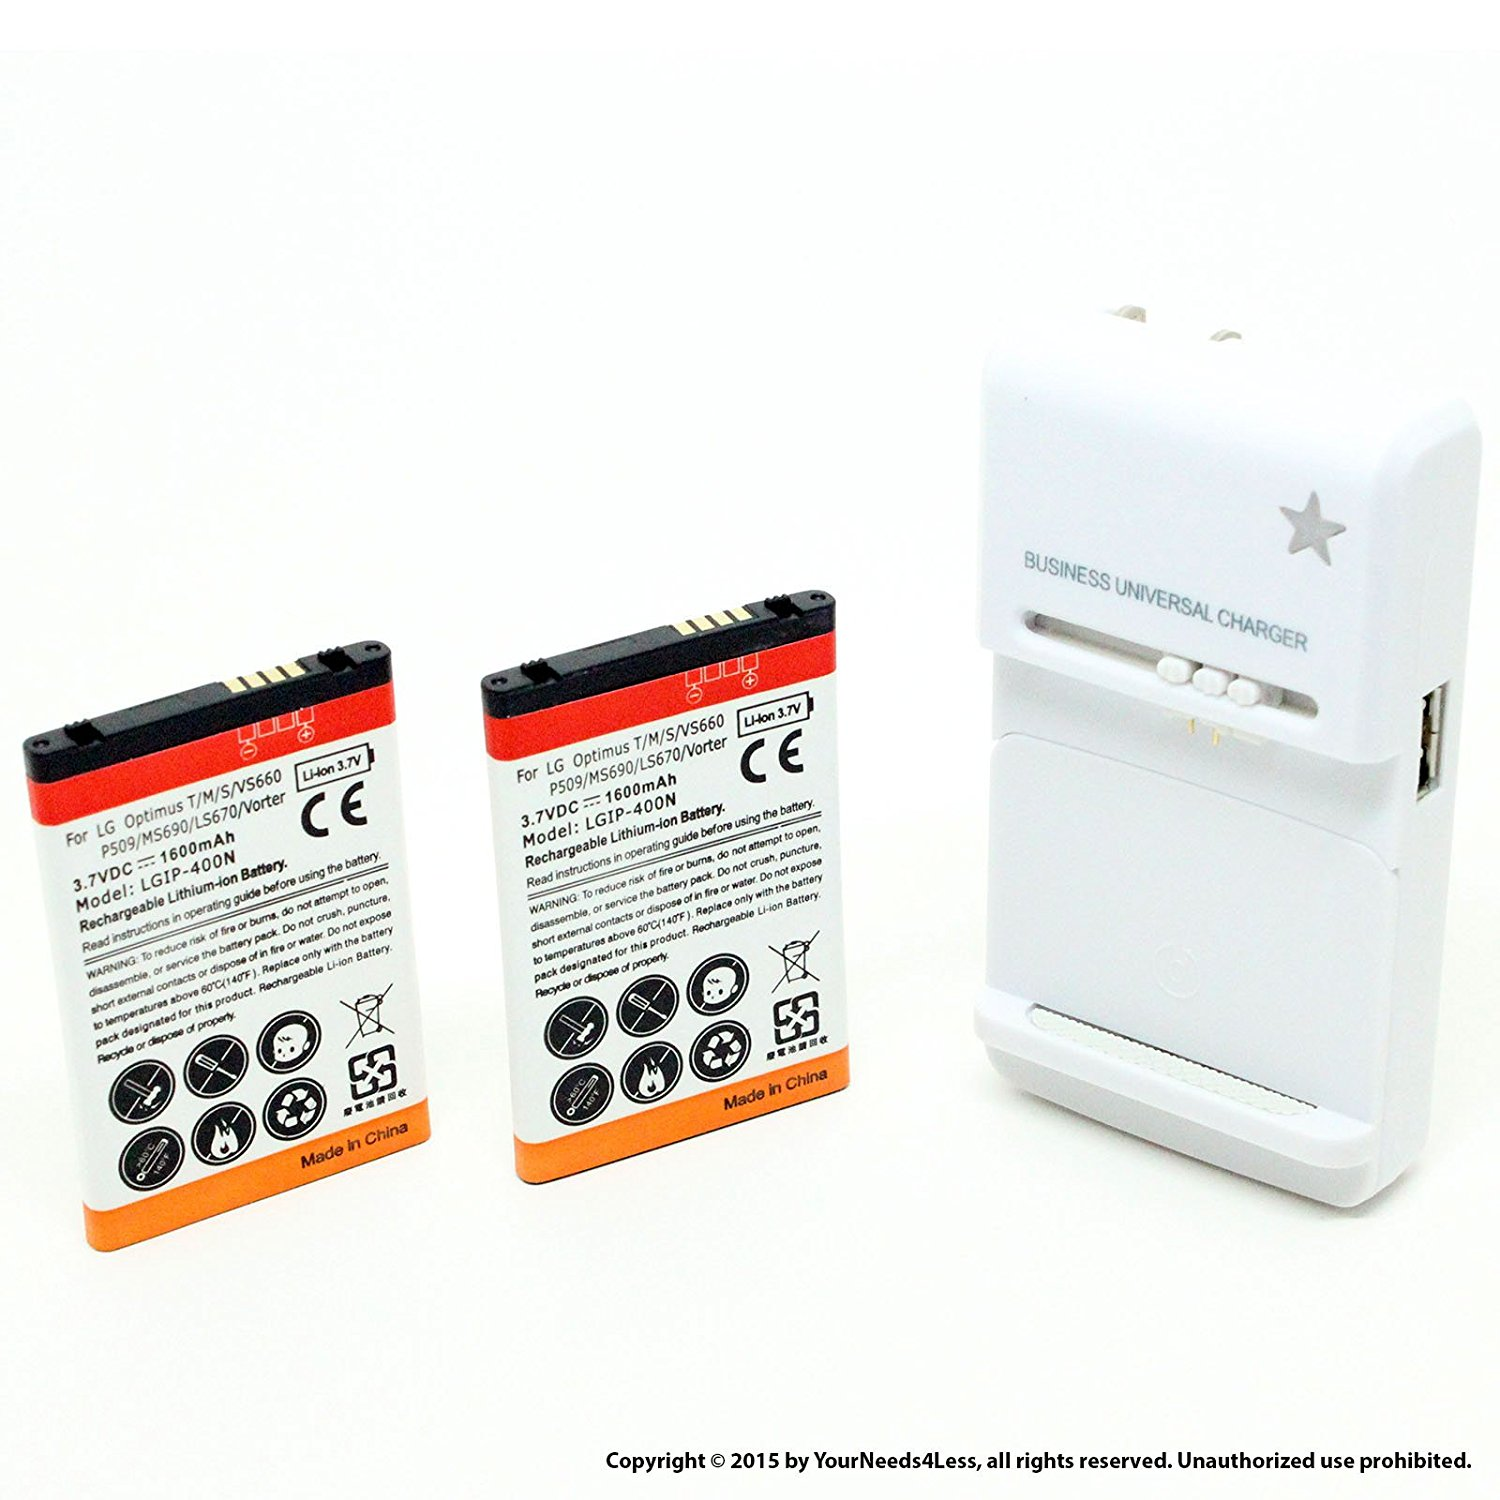 YN4L 2 X 1600mAh Replacement Batteries for LG LS670 ; Optimus S ; VS660 + Wall Dock Charger Bundle